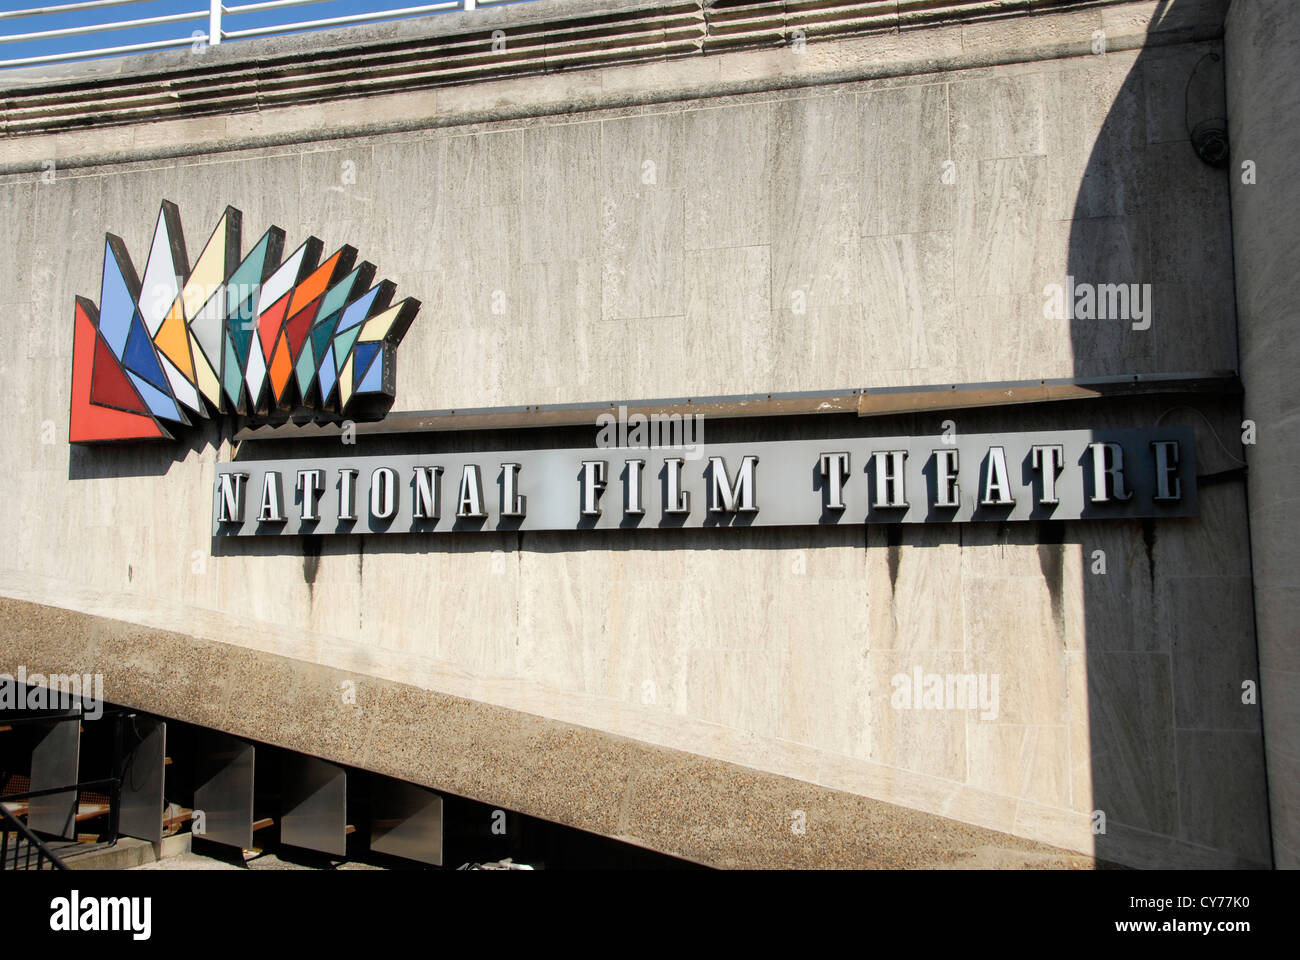 BFI British Film Institute for National Film Theatre sign on South Bank London UK - Stock Image